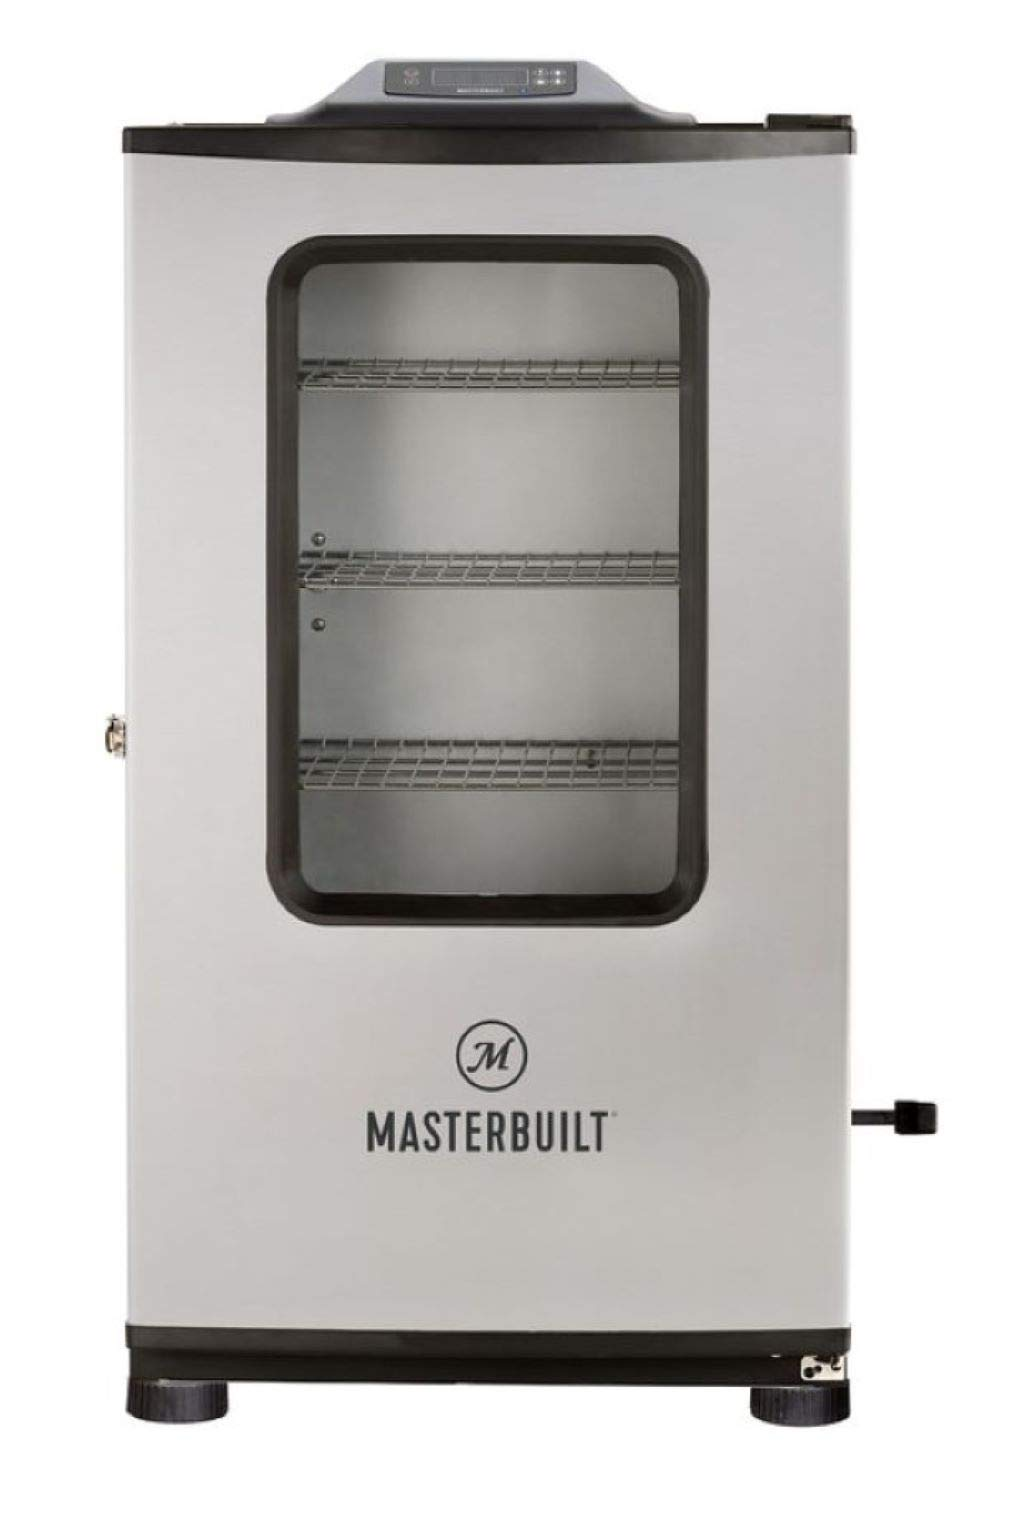 Masterbuilt MB20074719 Mes 140g Bluetooth Digital Electric Smoker, 40'' Stainless + Window + BT by Masterbuilt